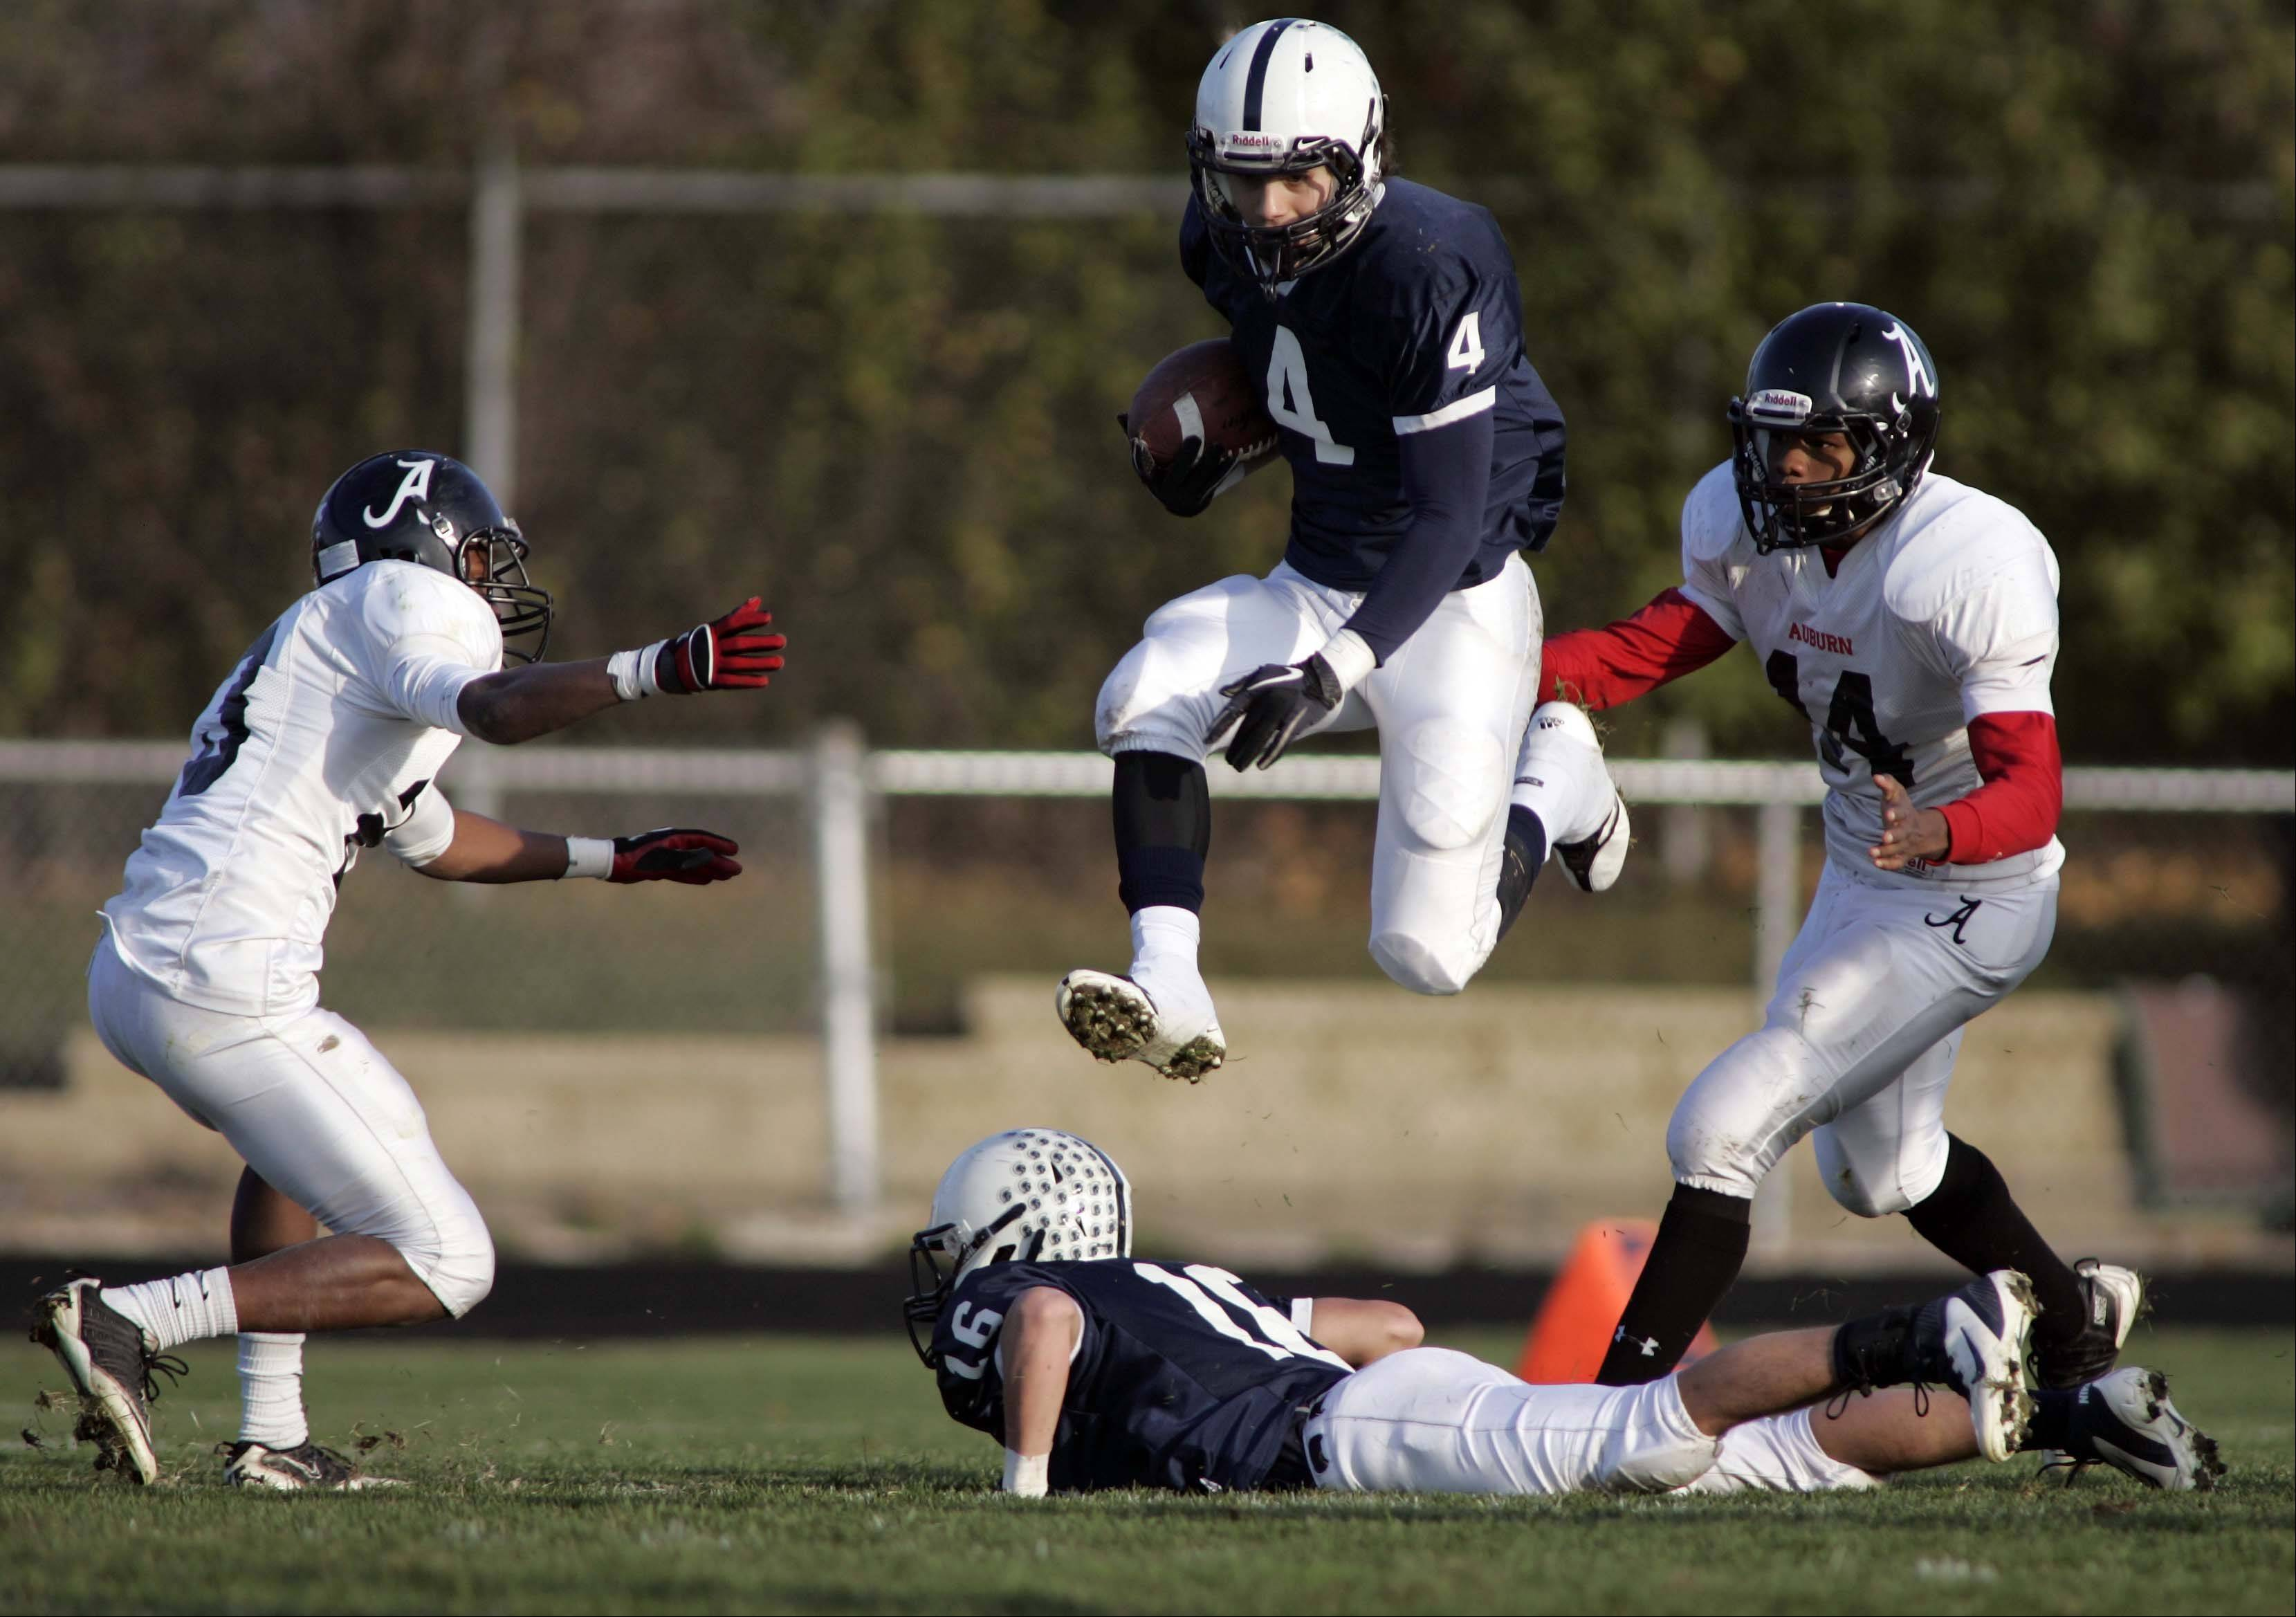 Cary-Grove's Ryan Mahoney (4) leaps over Kaene Connington to get some more running room during Cary-Grove's Class 6A playoff with over Rockford Auburn Saturday in Cary.